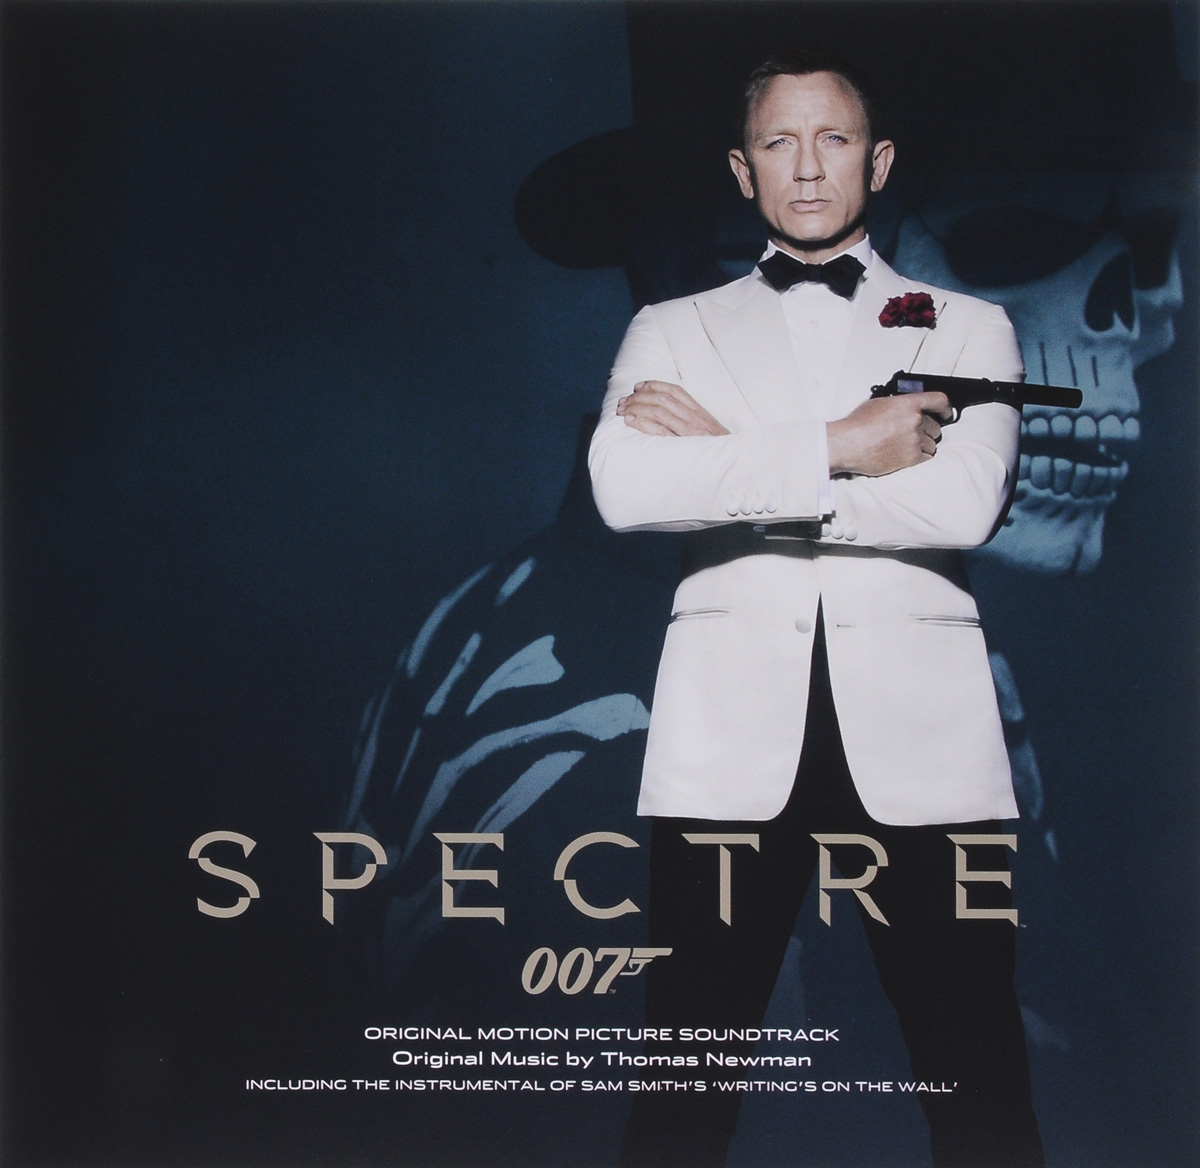 Spectre. Original Motion Picture Soundtrack. Original Music By Thomas Newman (LP) росмэн цветная бумага 10л 10цв мстители